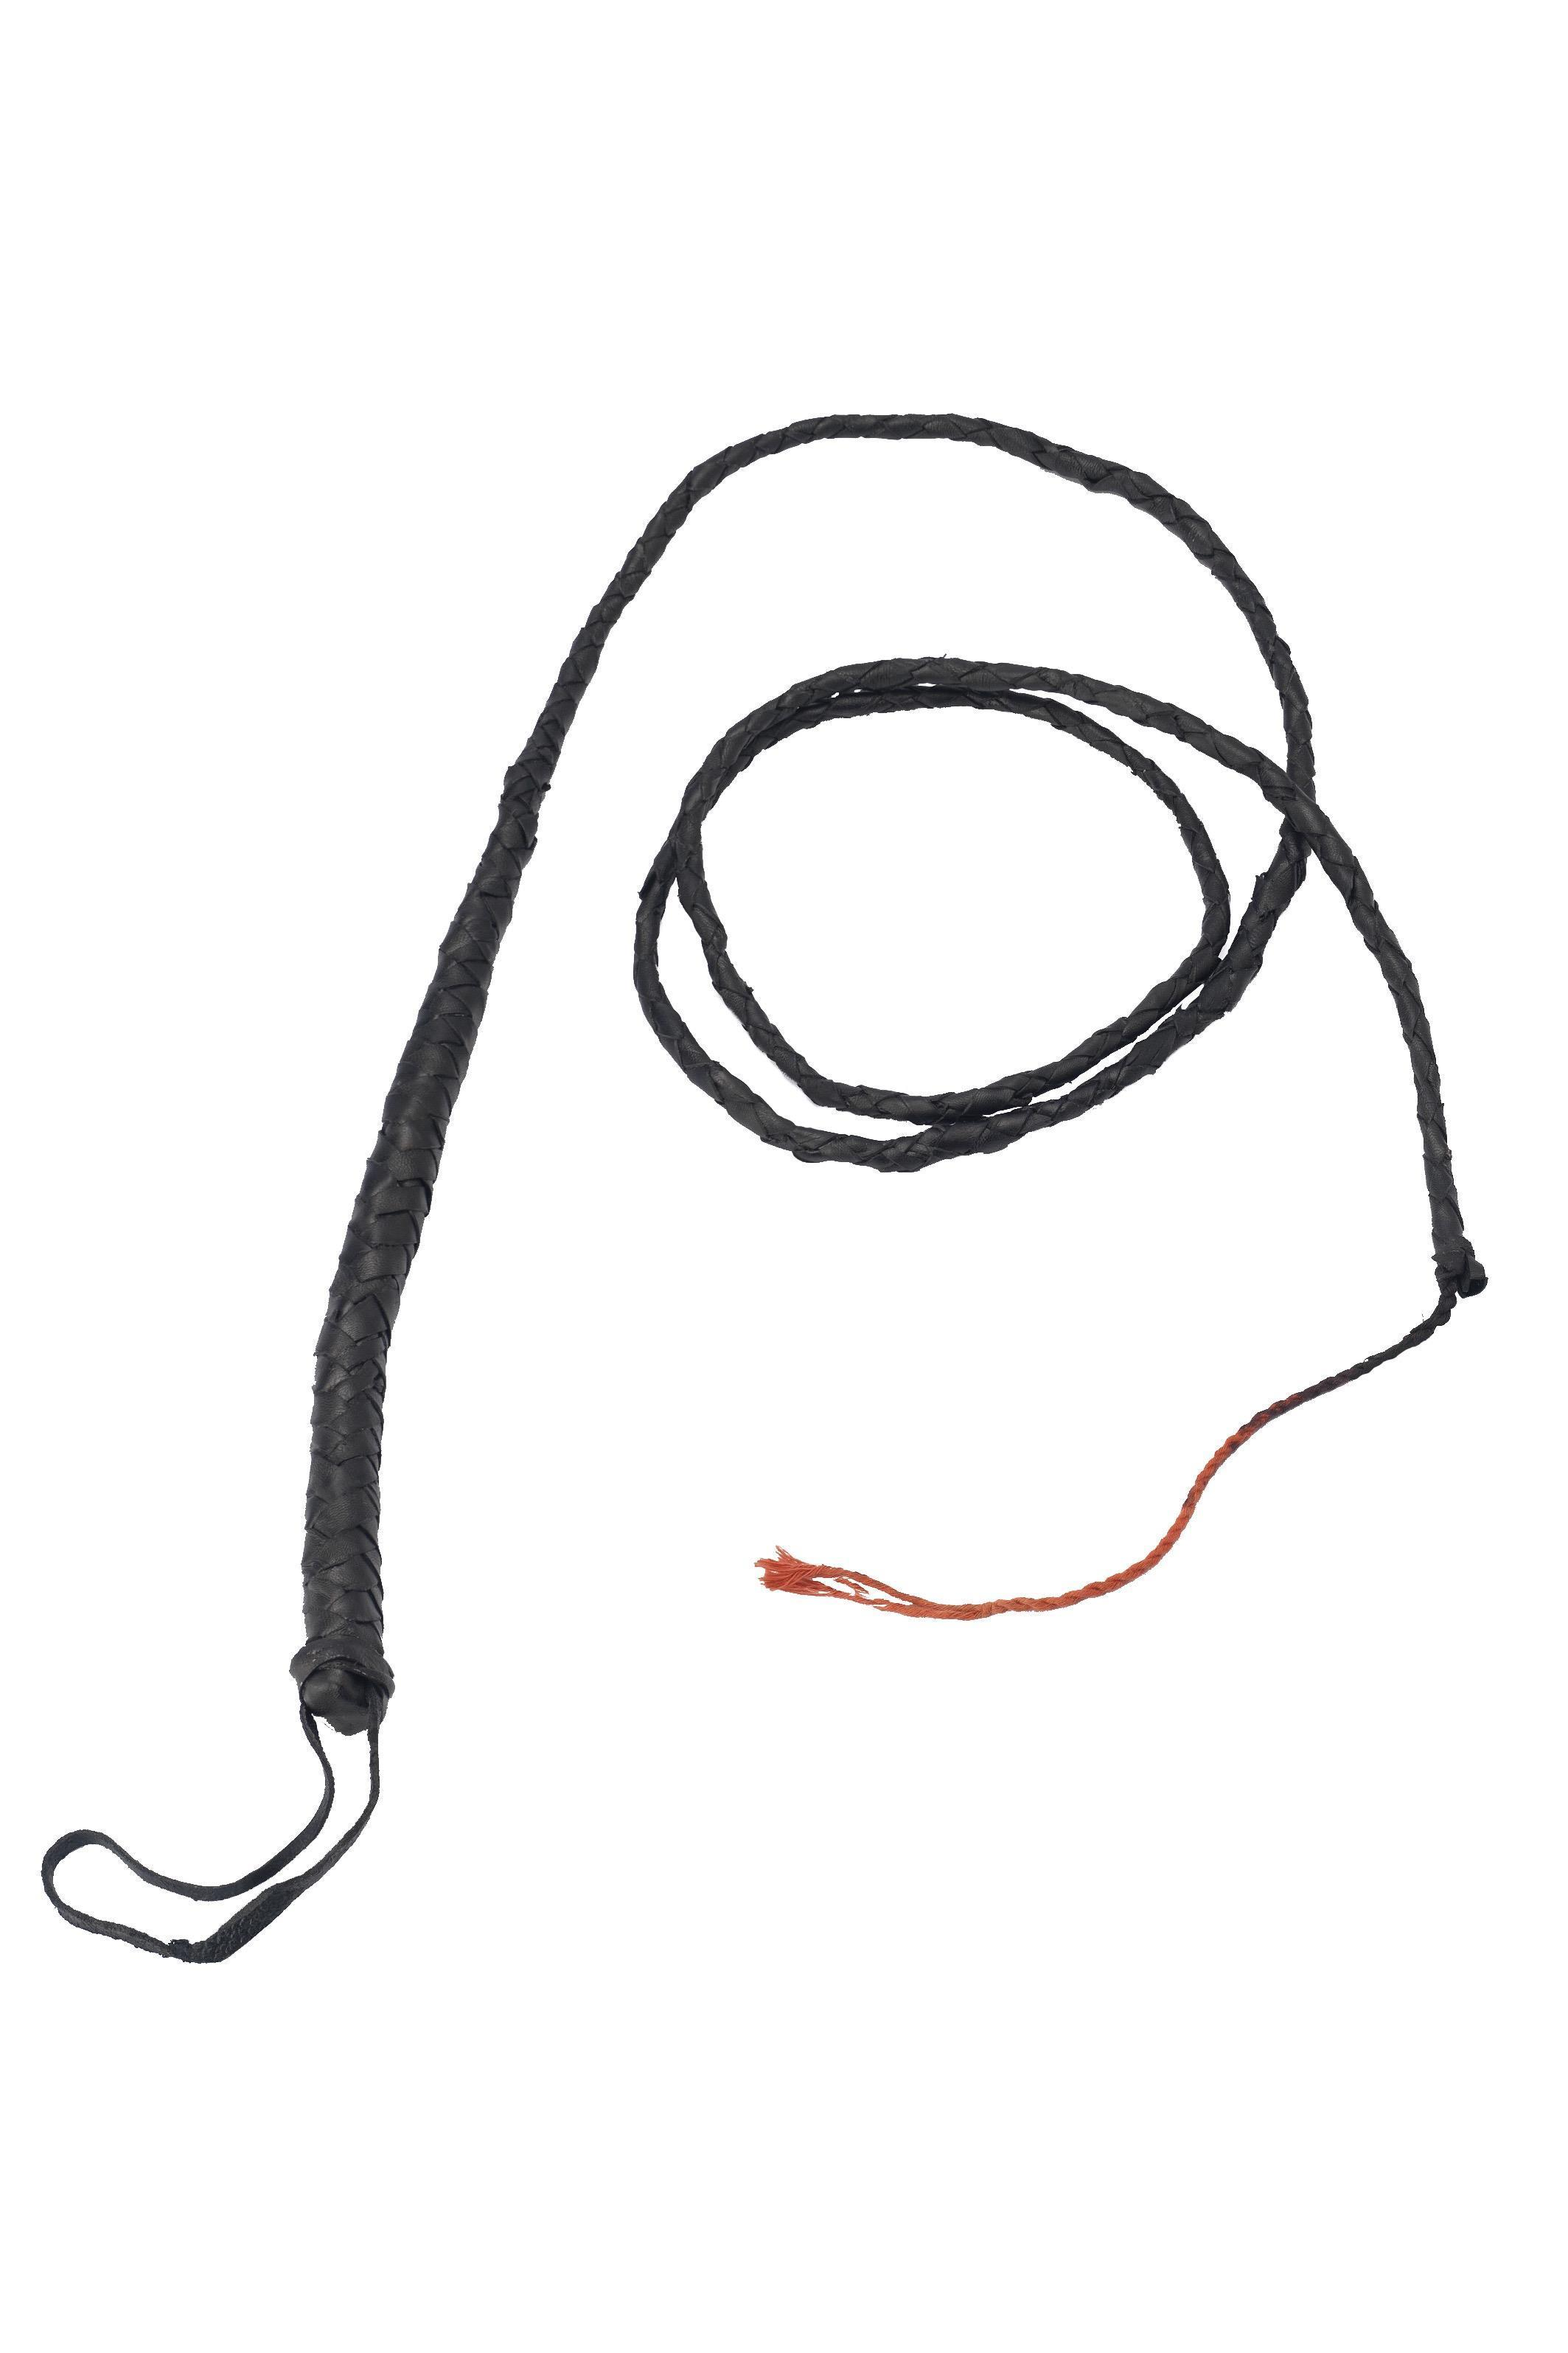 Long Bull Whip Black